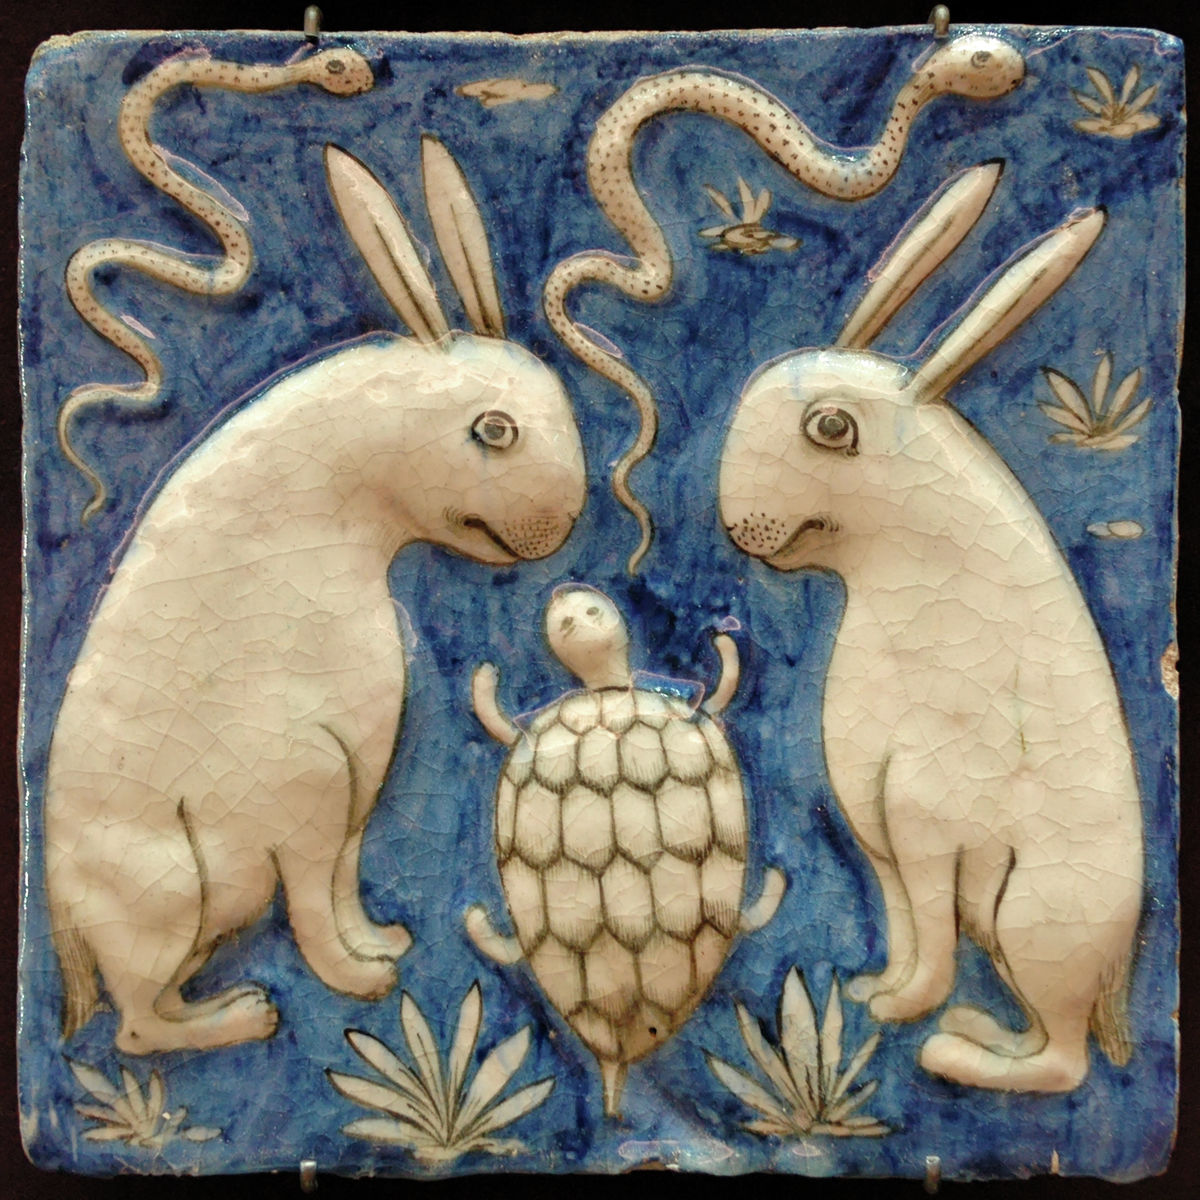 Rabbits and Tortoise - 13th Century